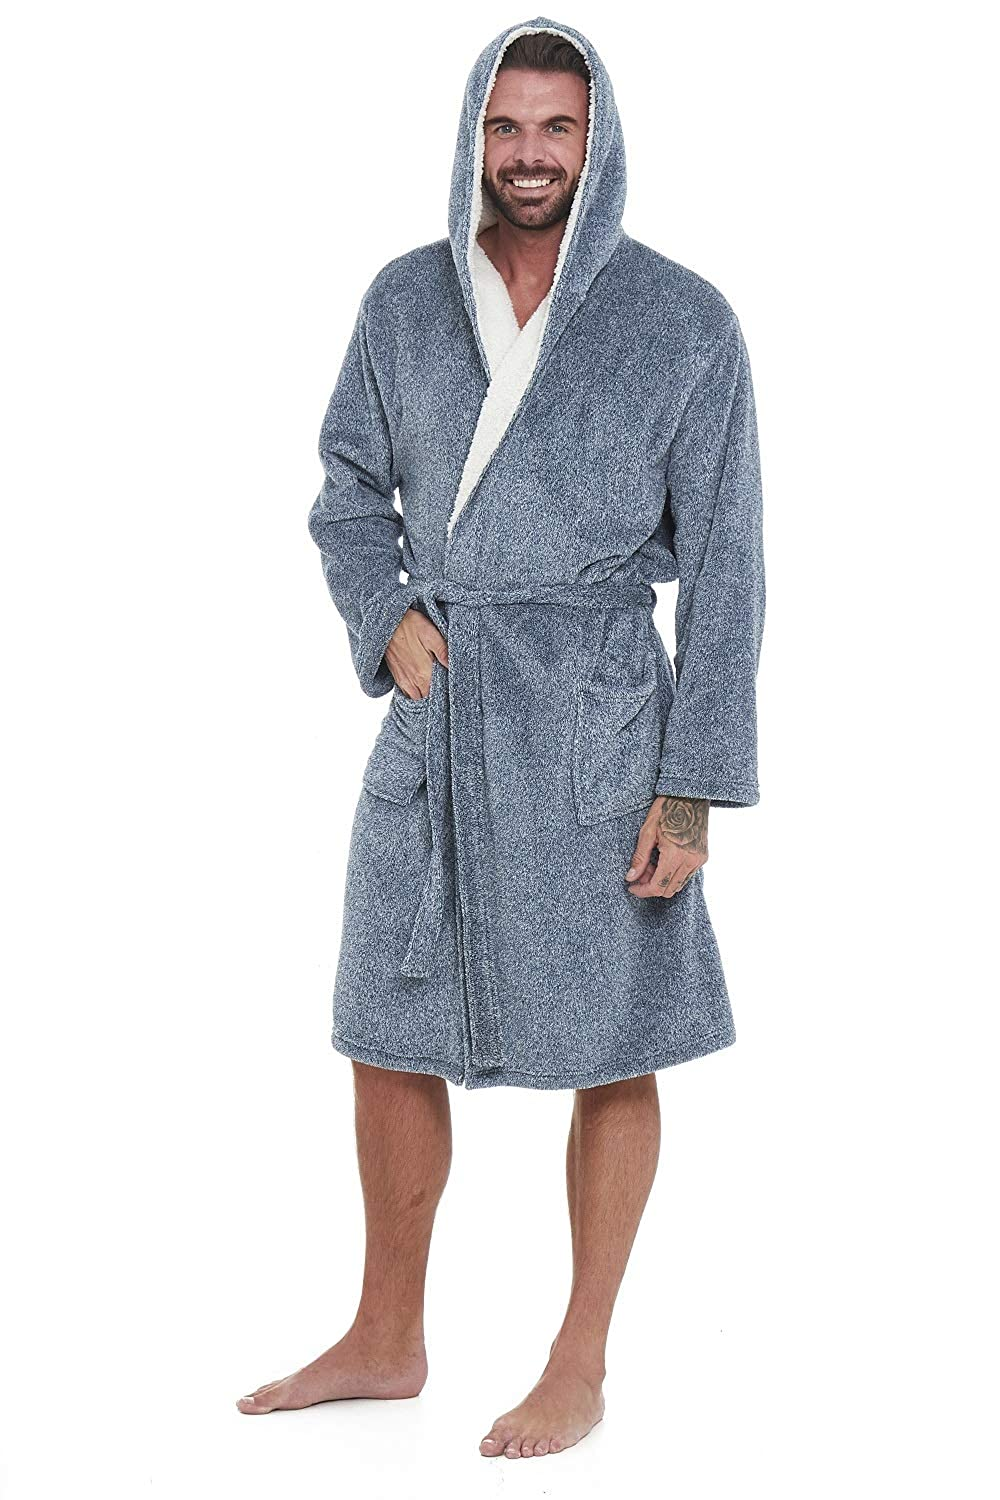 Super Soft Men Dressing Gown Mens Hooded Robe - Offers a Great Combination Between Quality and Comfort - Great Gift